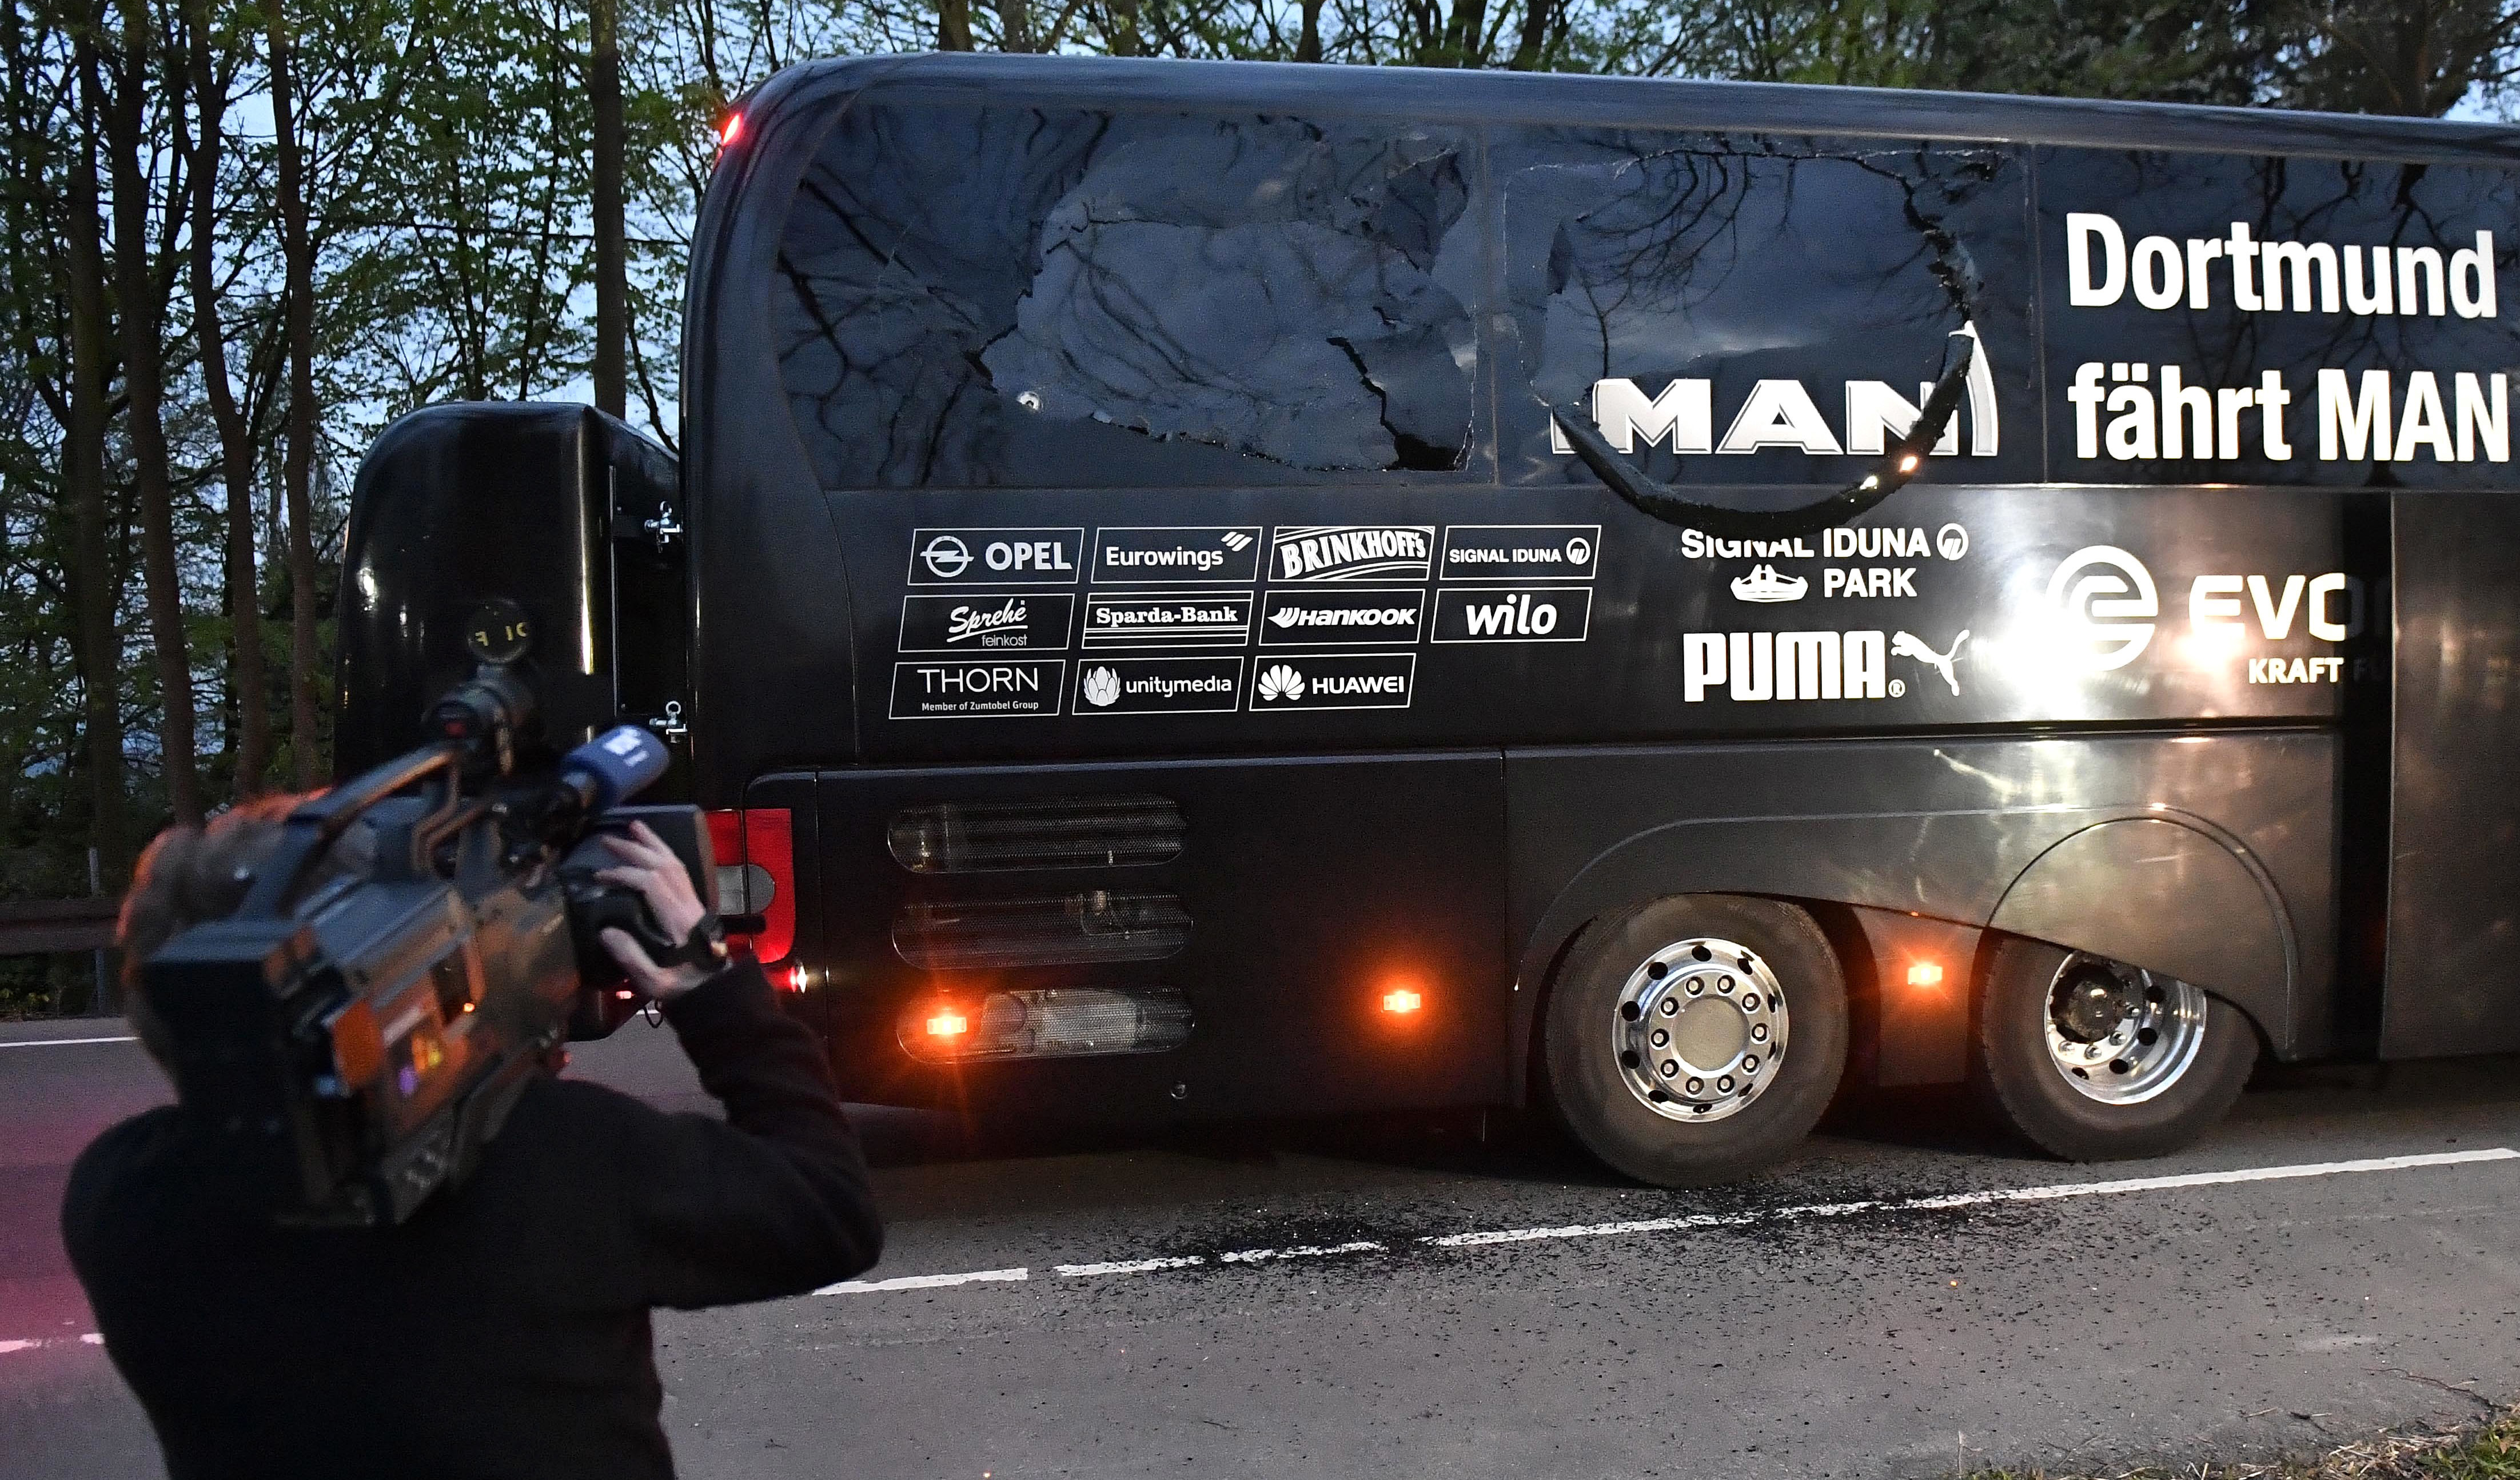 A camera man films Dortmund's team bus after it was damaged in an explosion before the Champions League quarterfinal between Borussia Dortmund and AS Monaco in Dortmund, western Germany, Tuesday, April 11. (AP Photo/Martin Meissner)